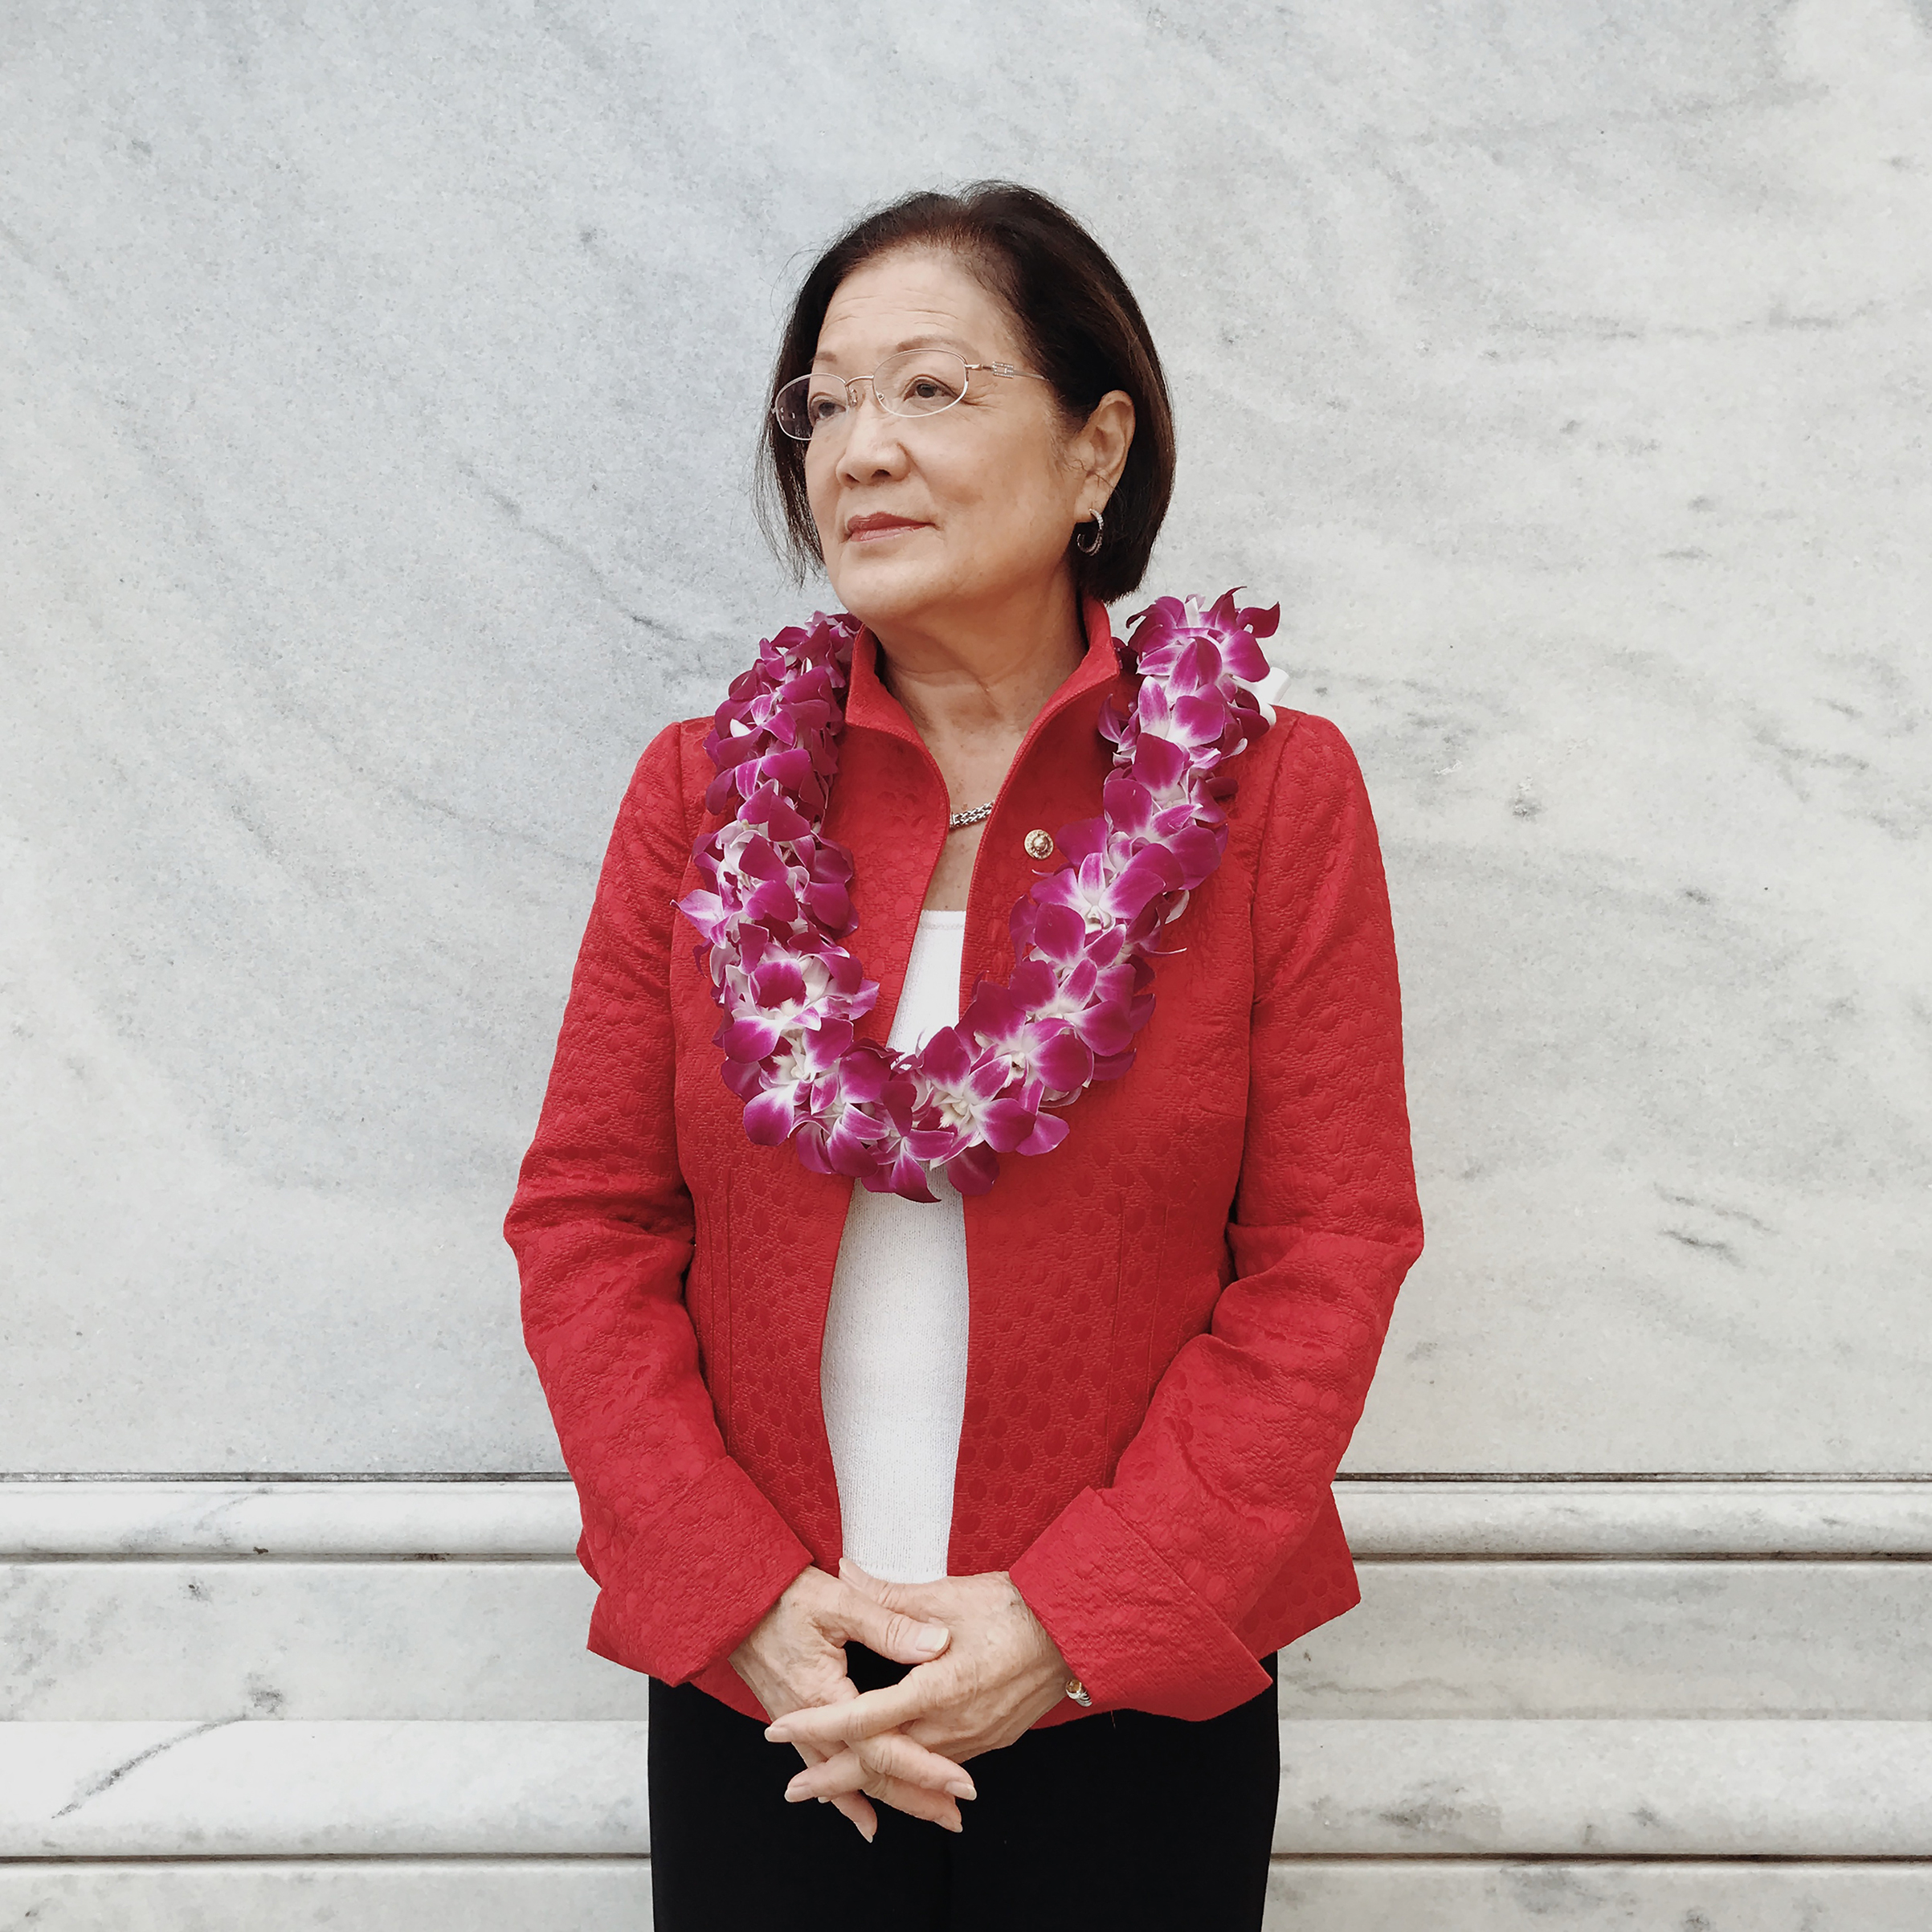 Hawaii's Mazie Hirono is the Senate's only immigrant and a thorn in the President's side. Hirono is the first Asian-American woman to serve in the Senate, the first Senator born in Japan and the first Senator from a Buddhist background.